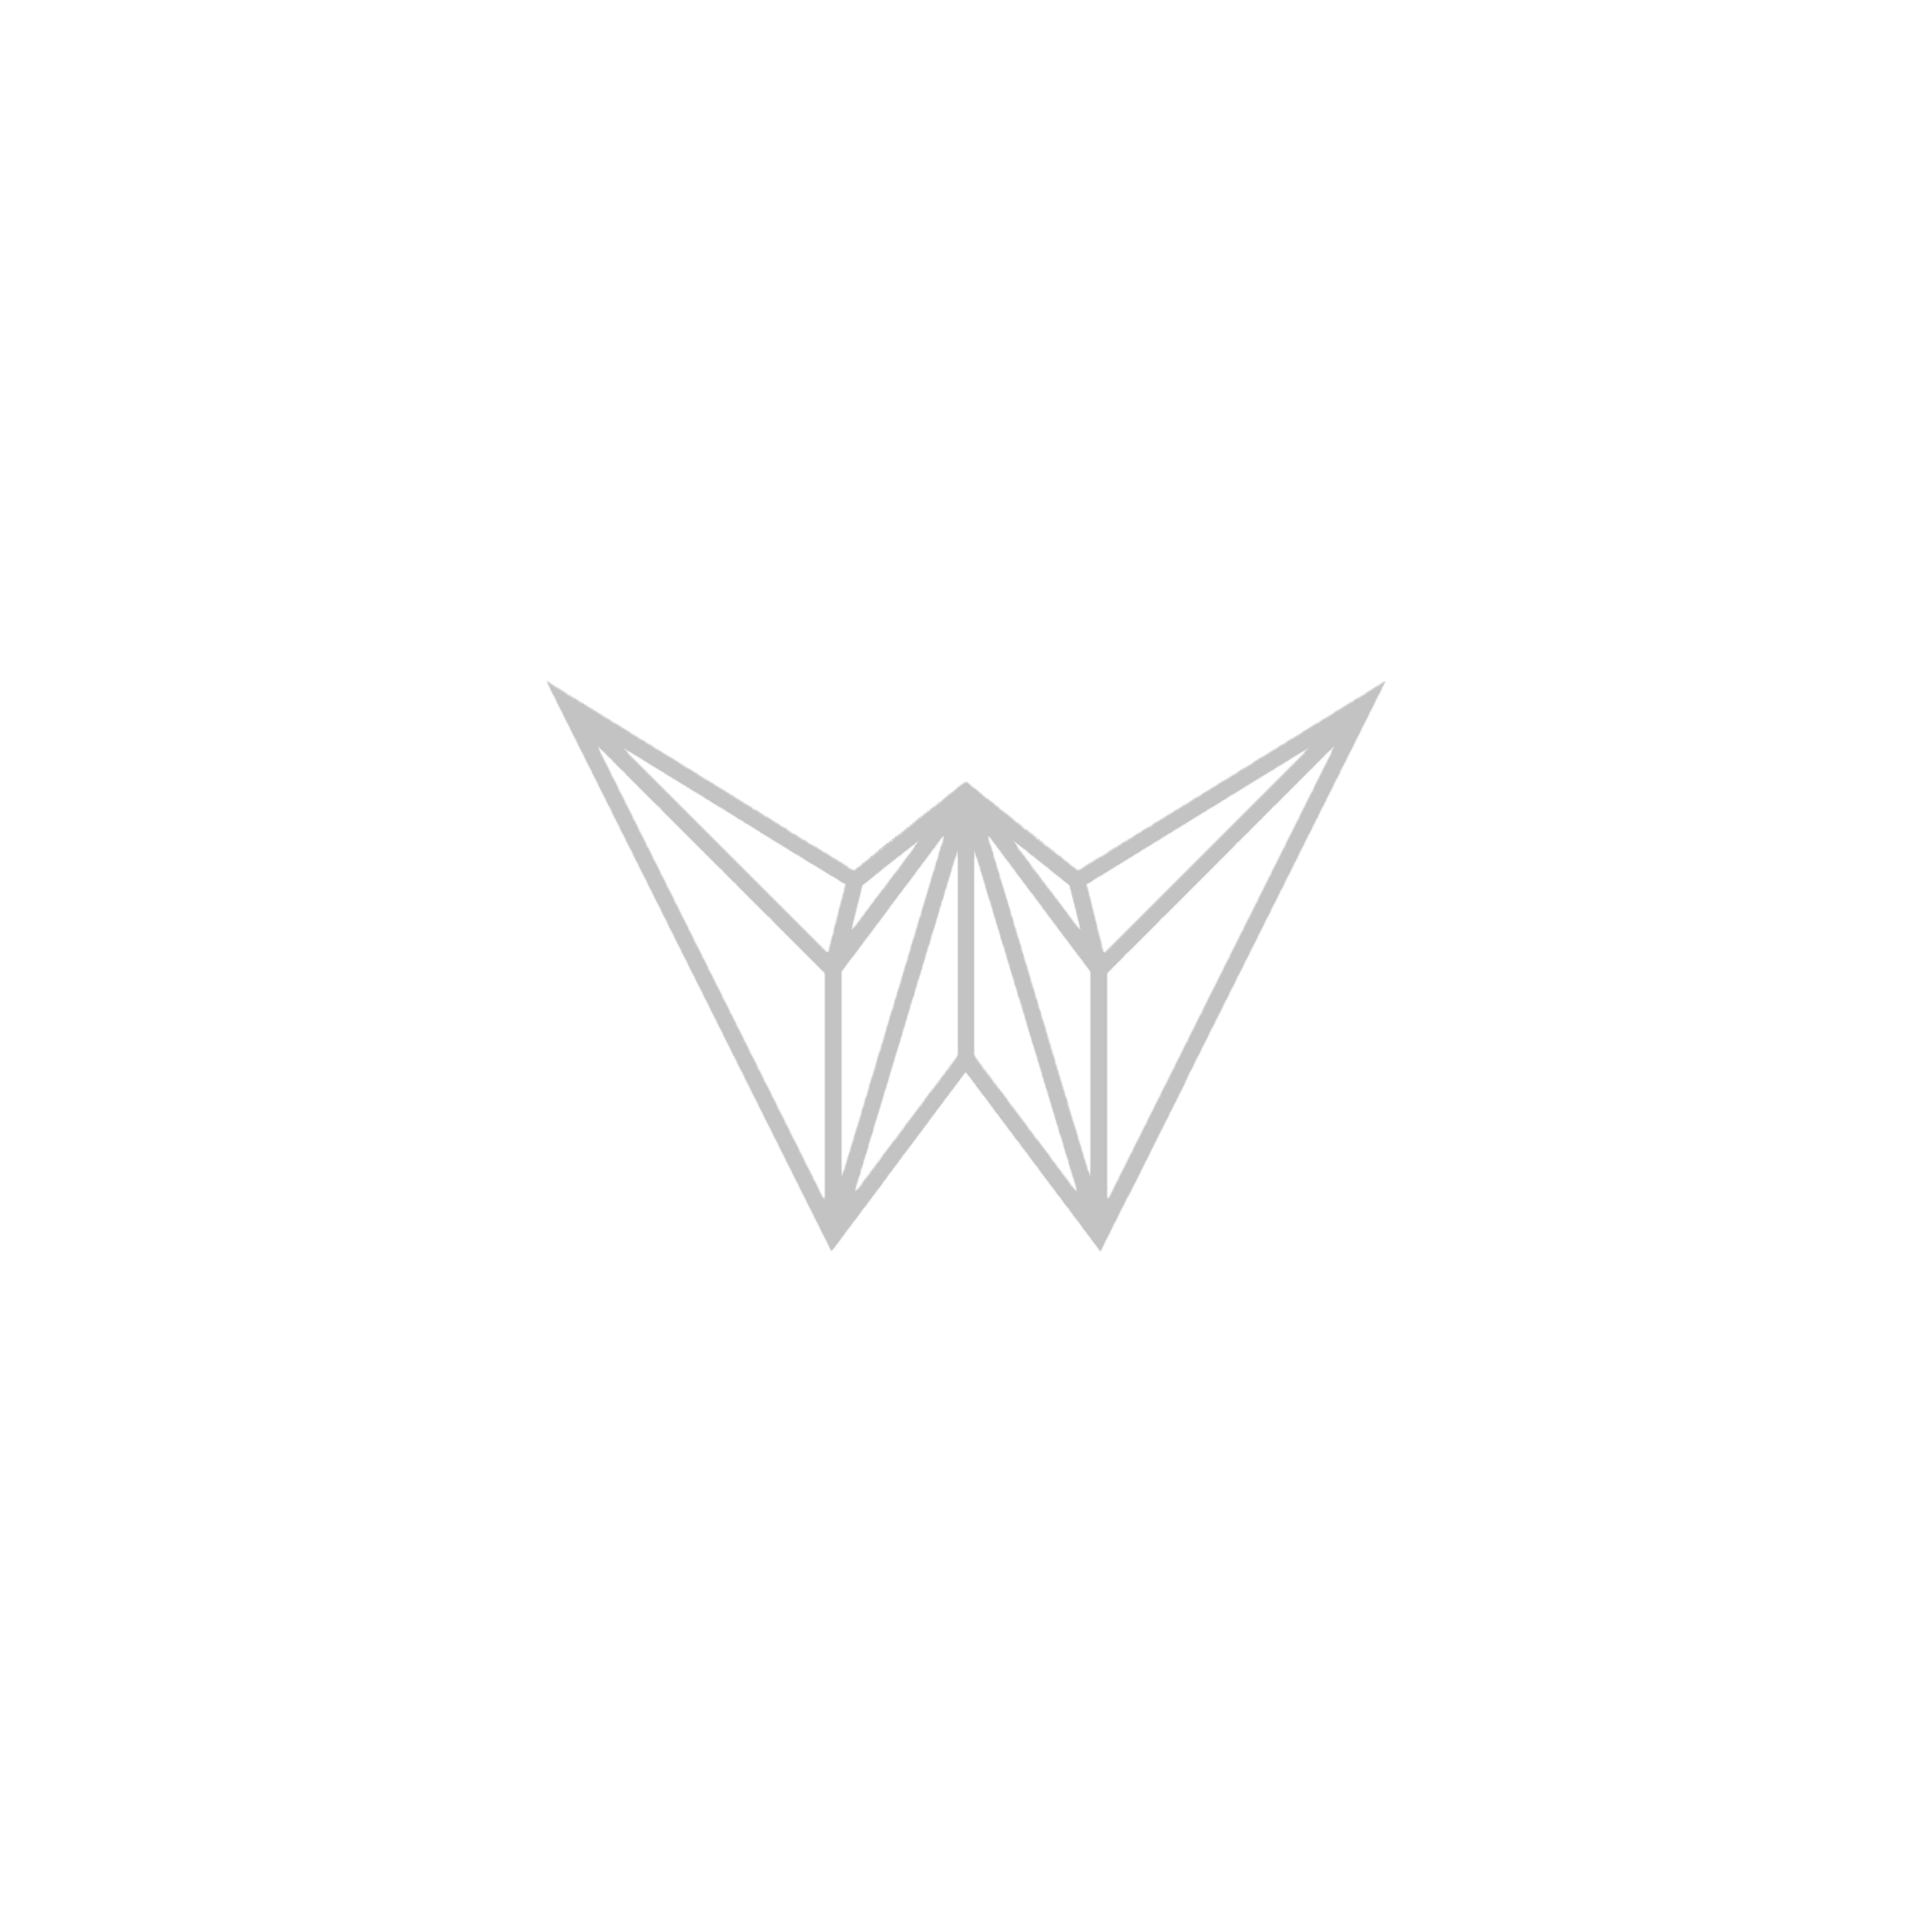 Wood Dale Logo 'W' (Light Gray) v2.png